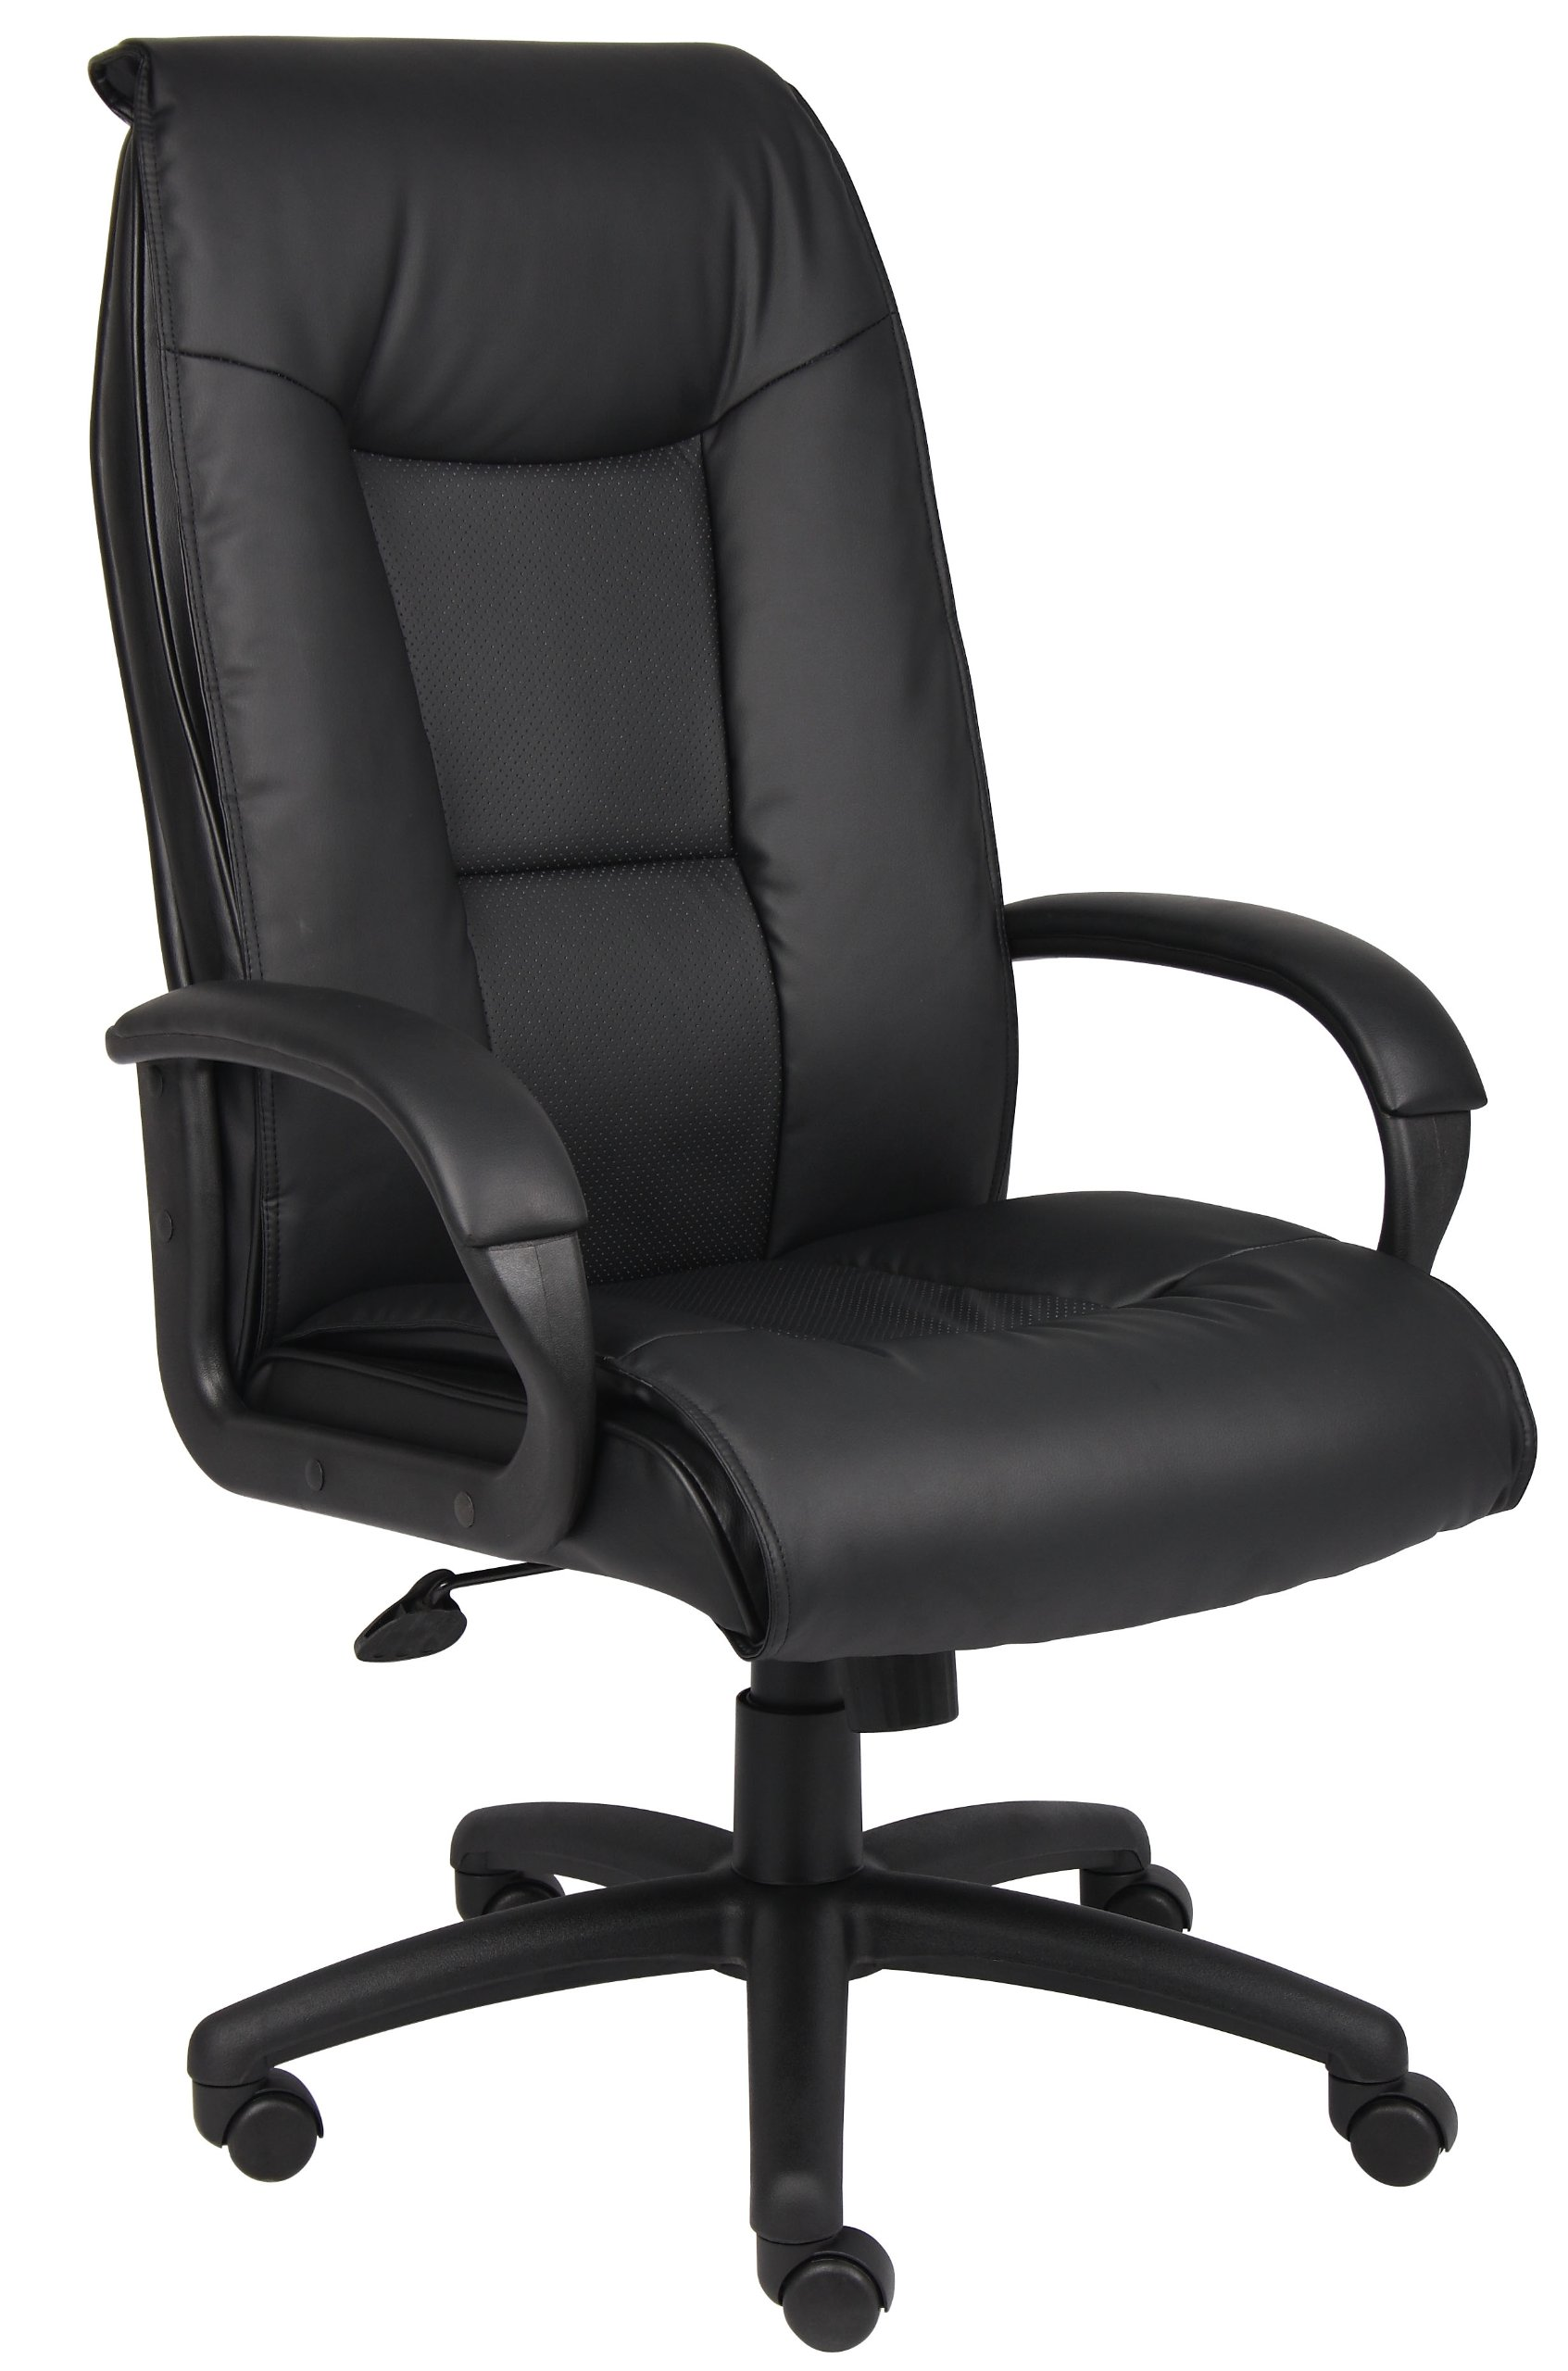 Boss Office Products B7602 Executive LeatherPlus Chair with Padded Arms and Knee Tilt in Black